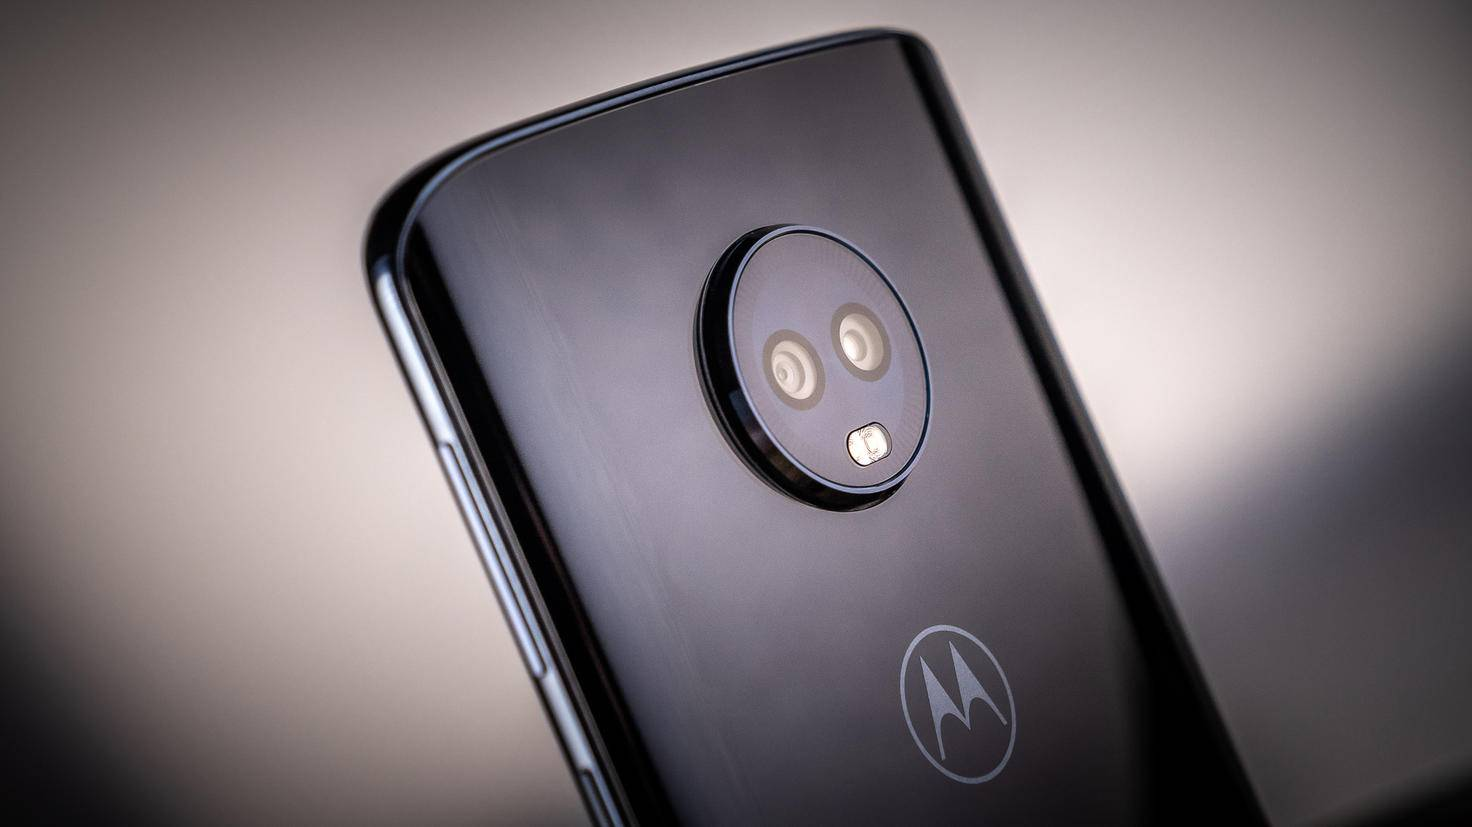 Motorola-Moto-G6-Plus-TURN-ON-5